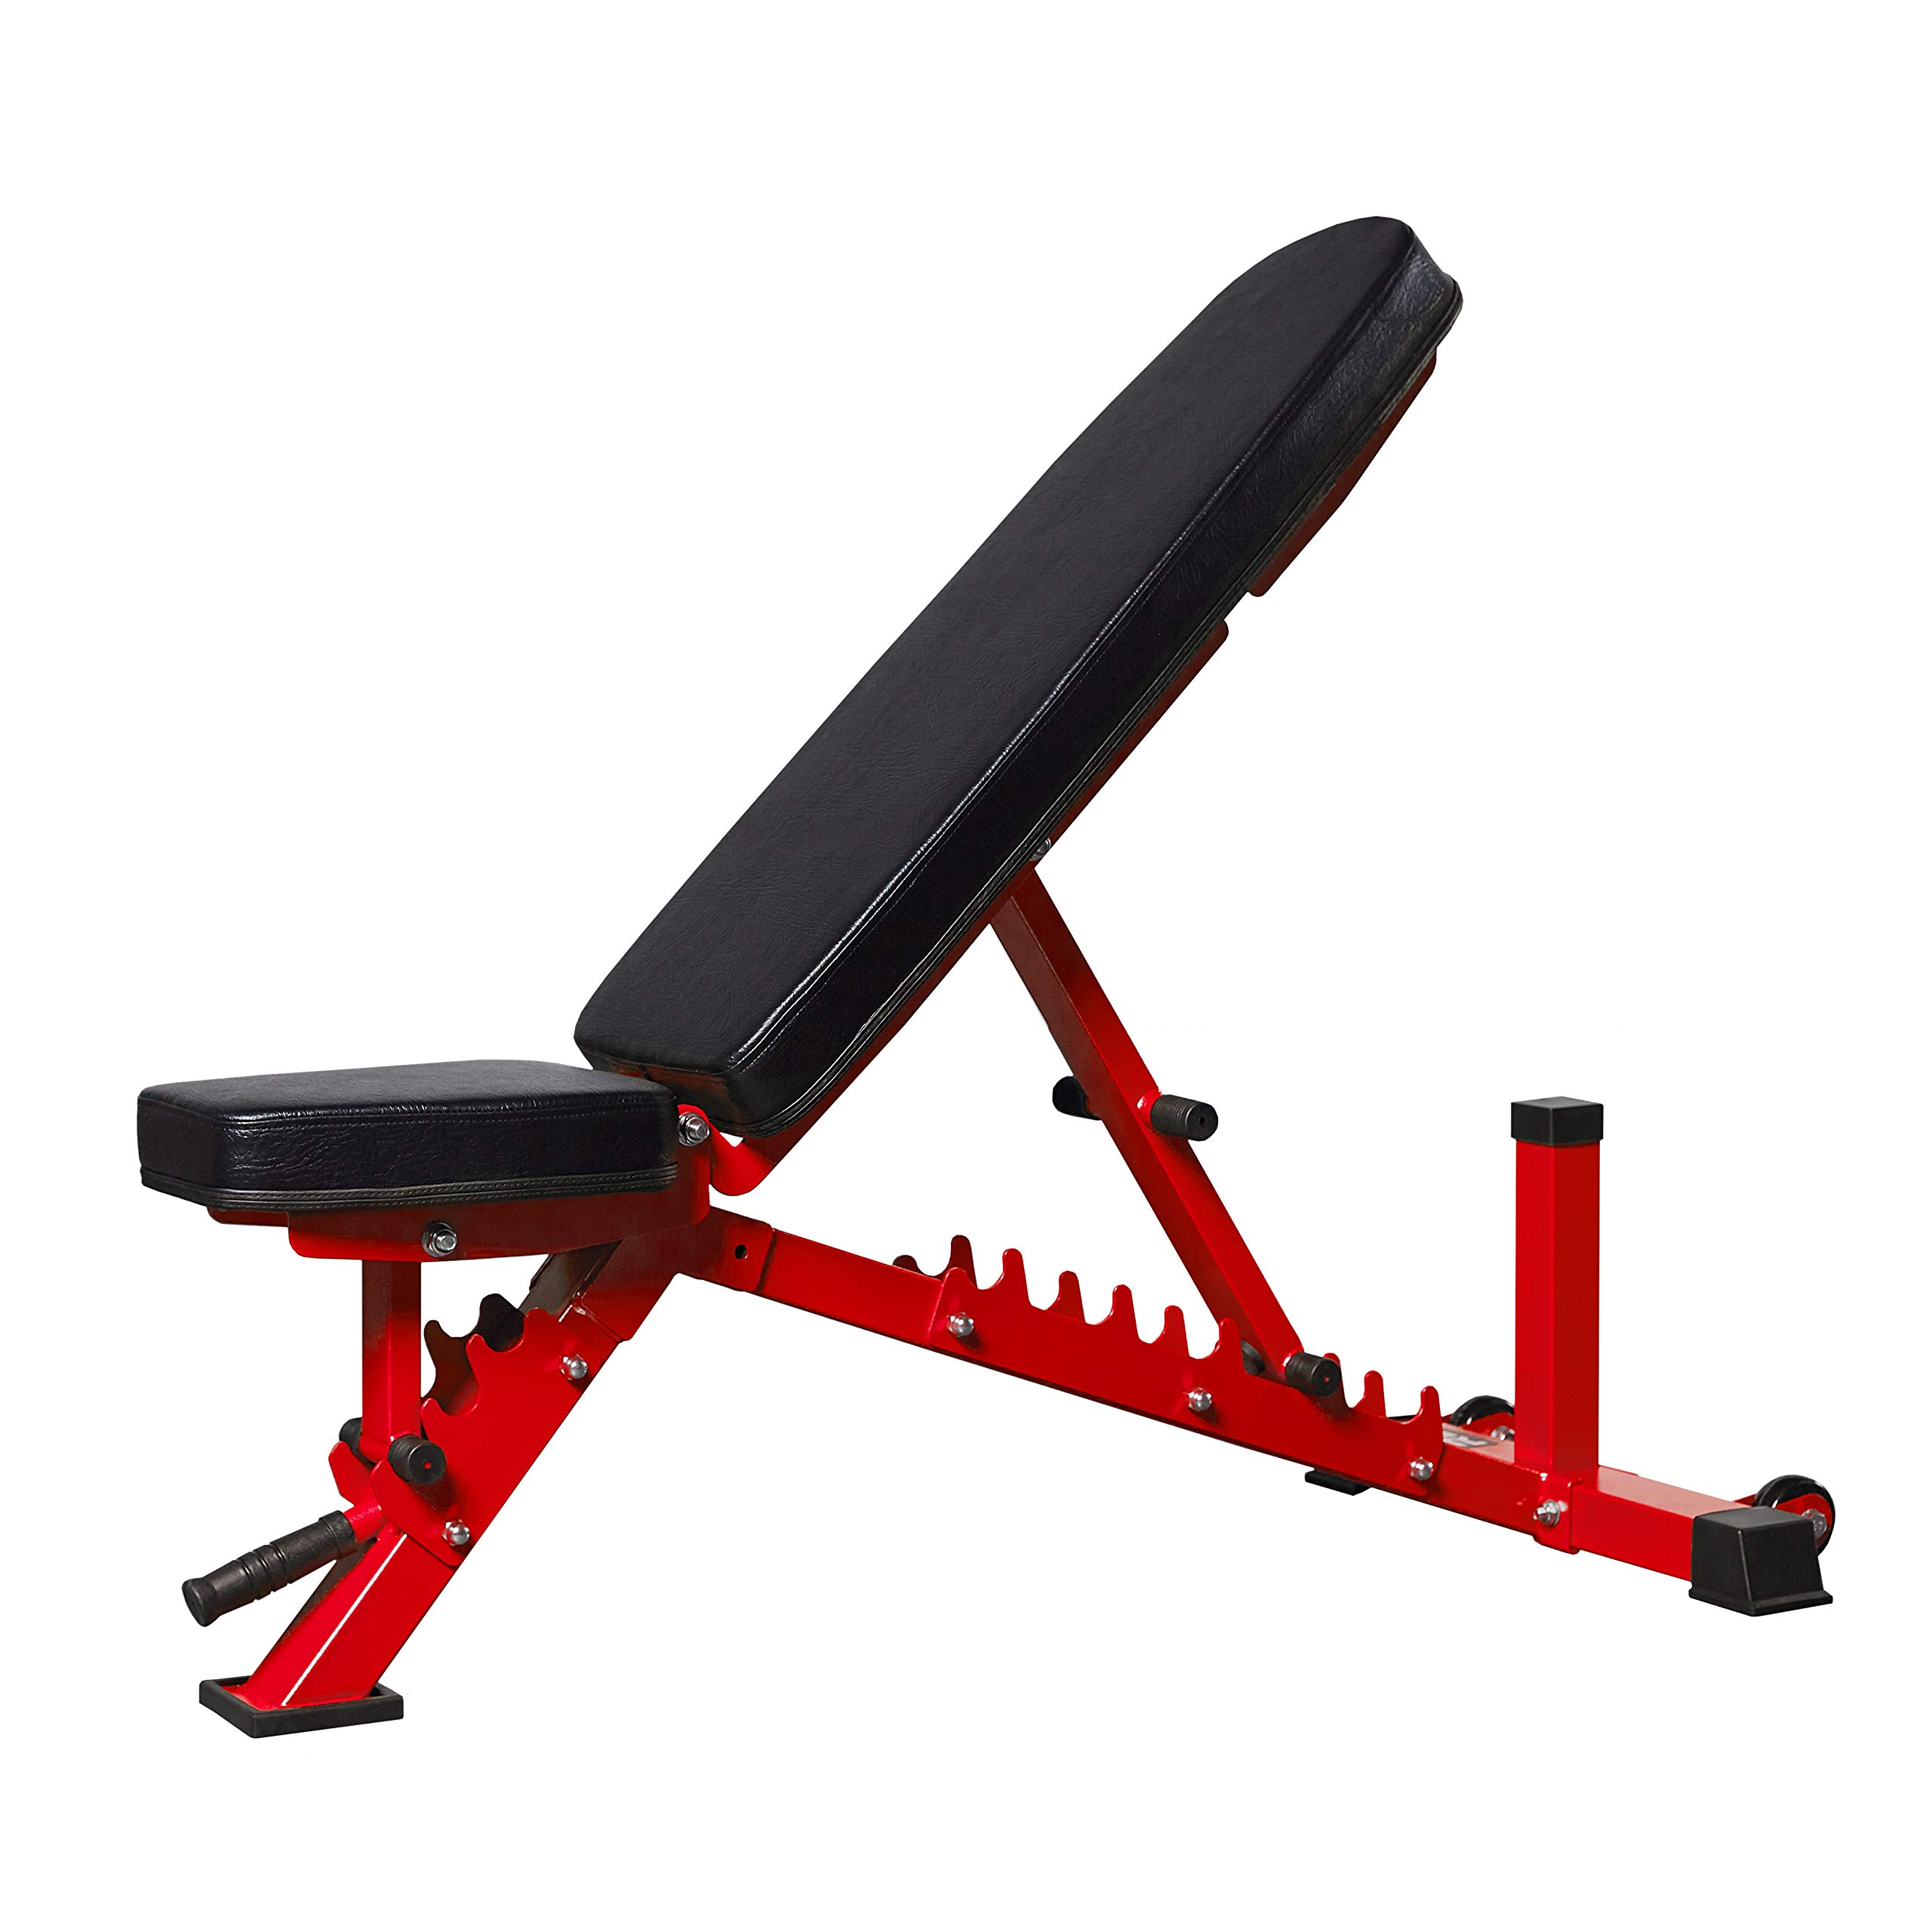 Rep Adjustable Bench, AB-3100 V3 – 1,000 lb Rated (Red)